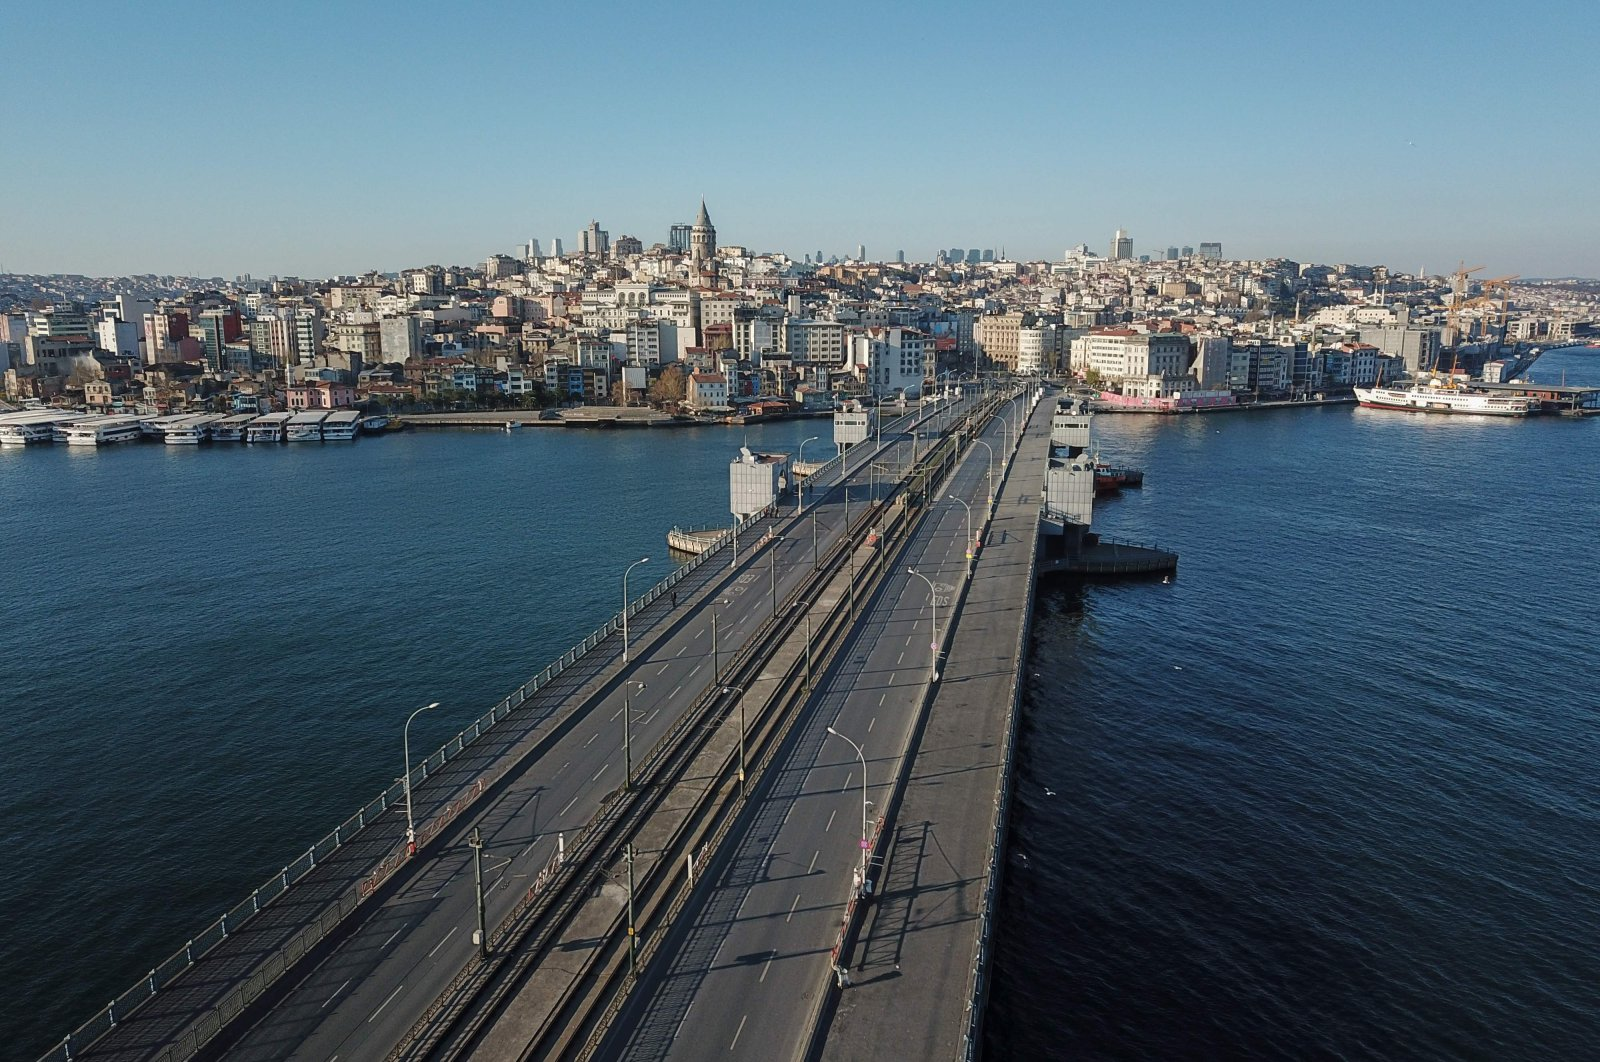 The Galata bridge and the Galata Tower in Istanbul on April 12, 2020, during a two-day curfew to prevent the spread of the epidemic COVID-19 caused by the novel coronavirus. (AFP Photo)